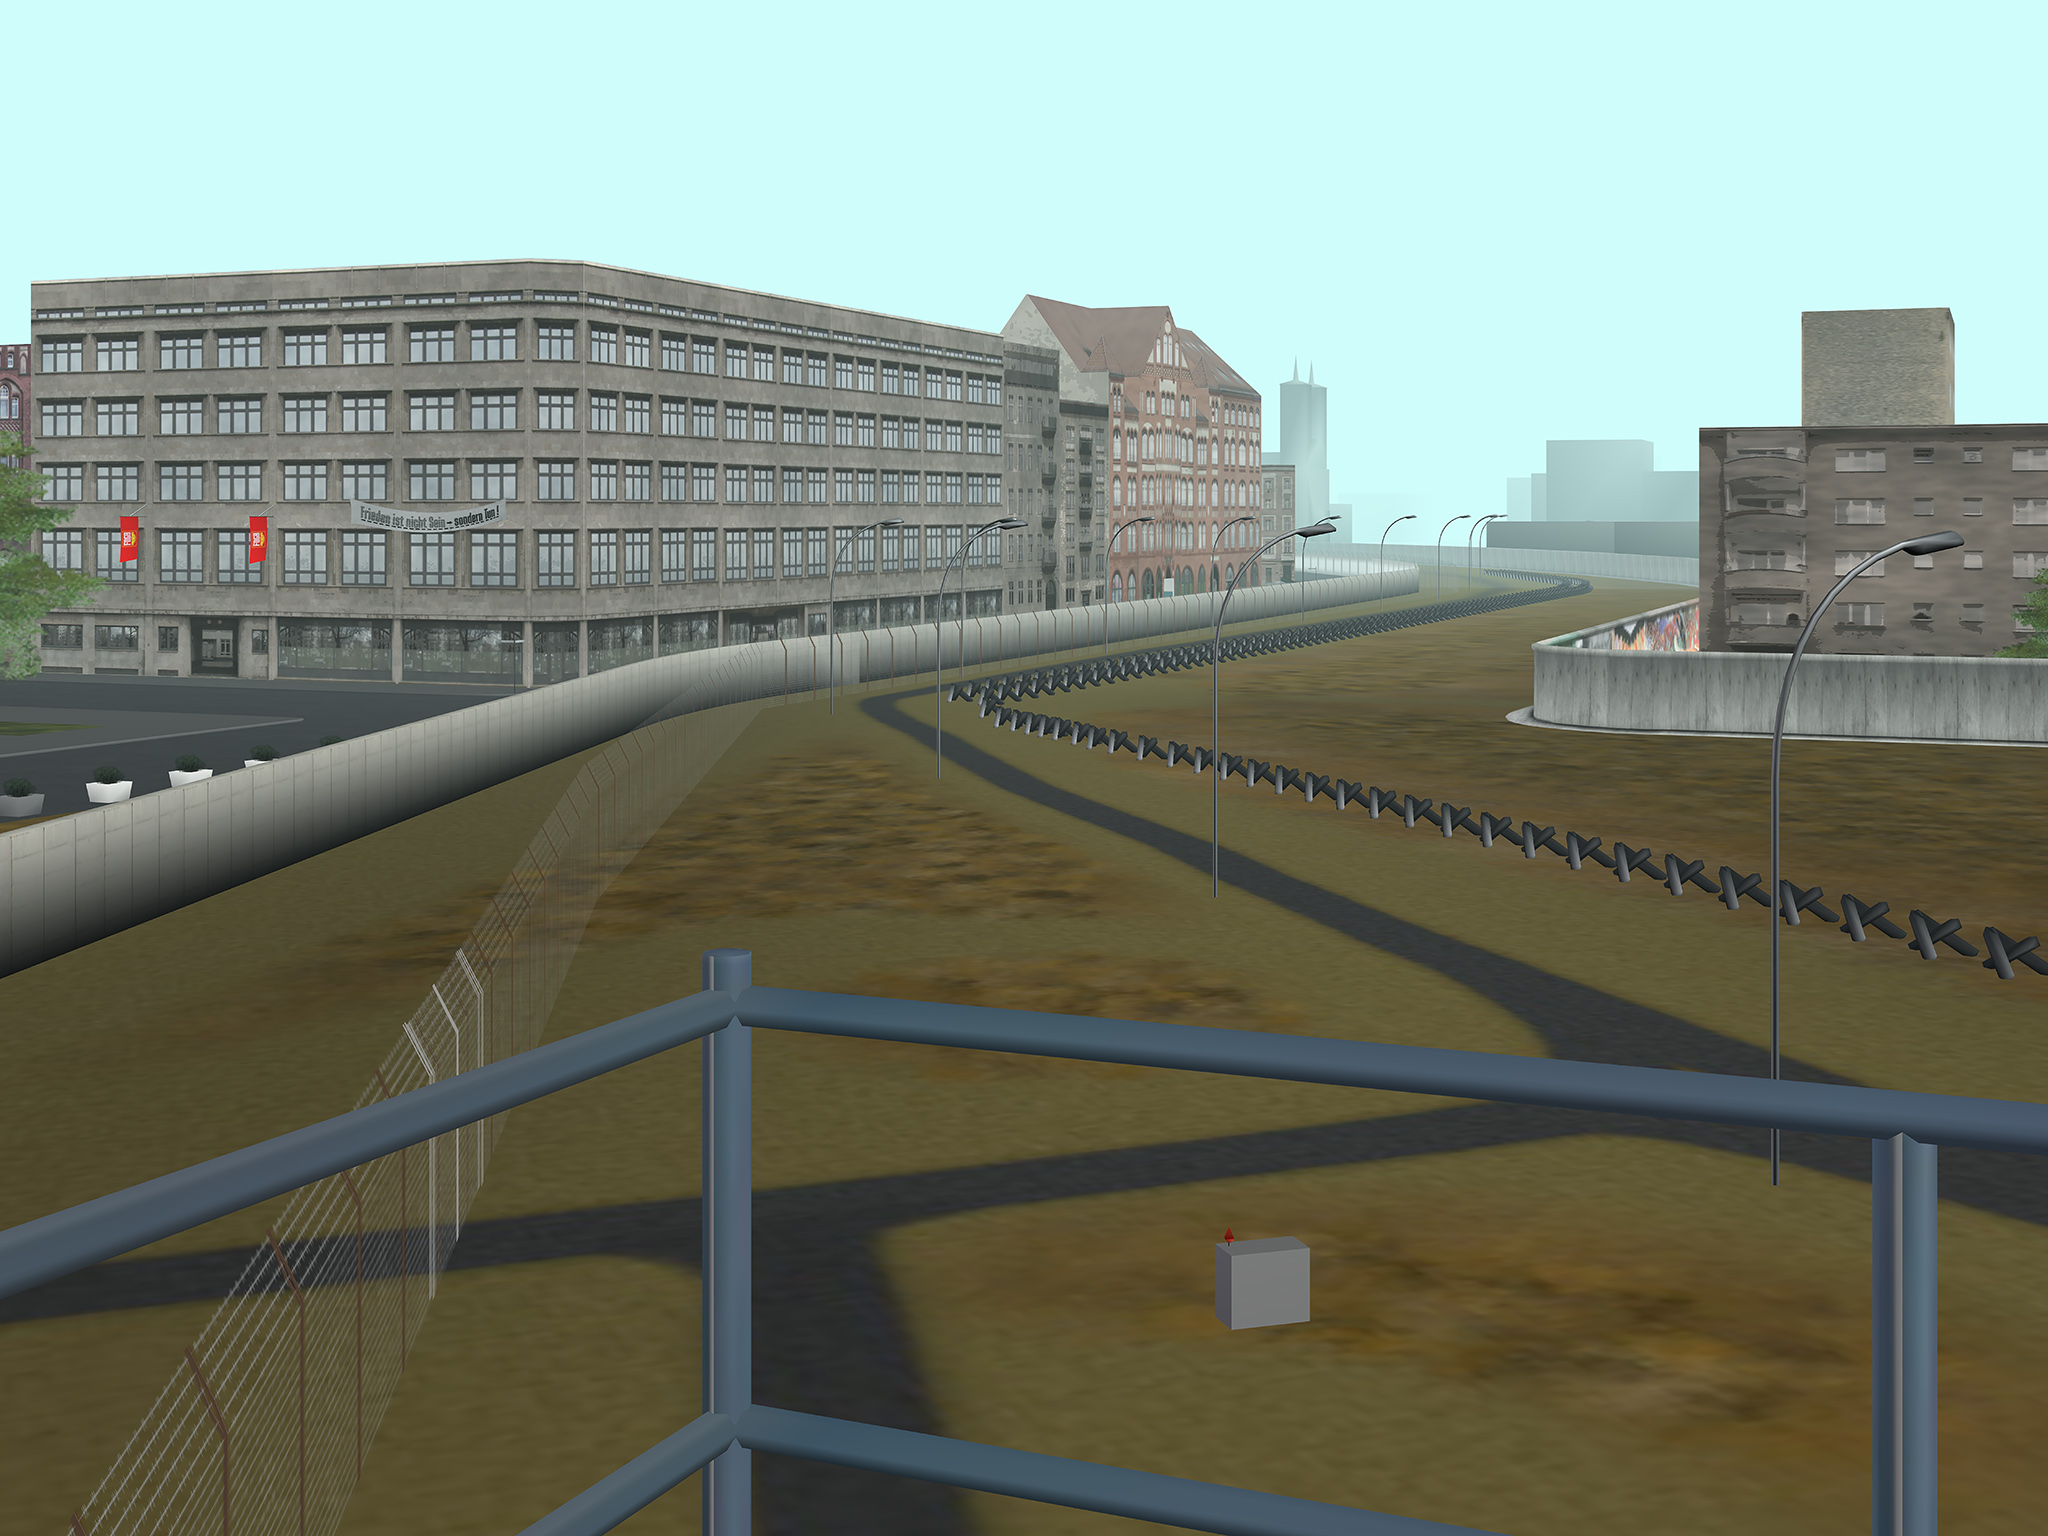 Tamiko Thiel, Virtual Berlin Wall: View from Engelbecken guard tower, looking east onto the Death Strip, 60 x 80 cm on Hahnemühle paper,  ed. 5 + 2 a/p, 2008/2021